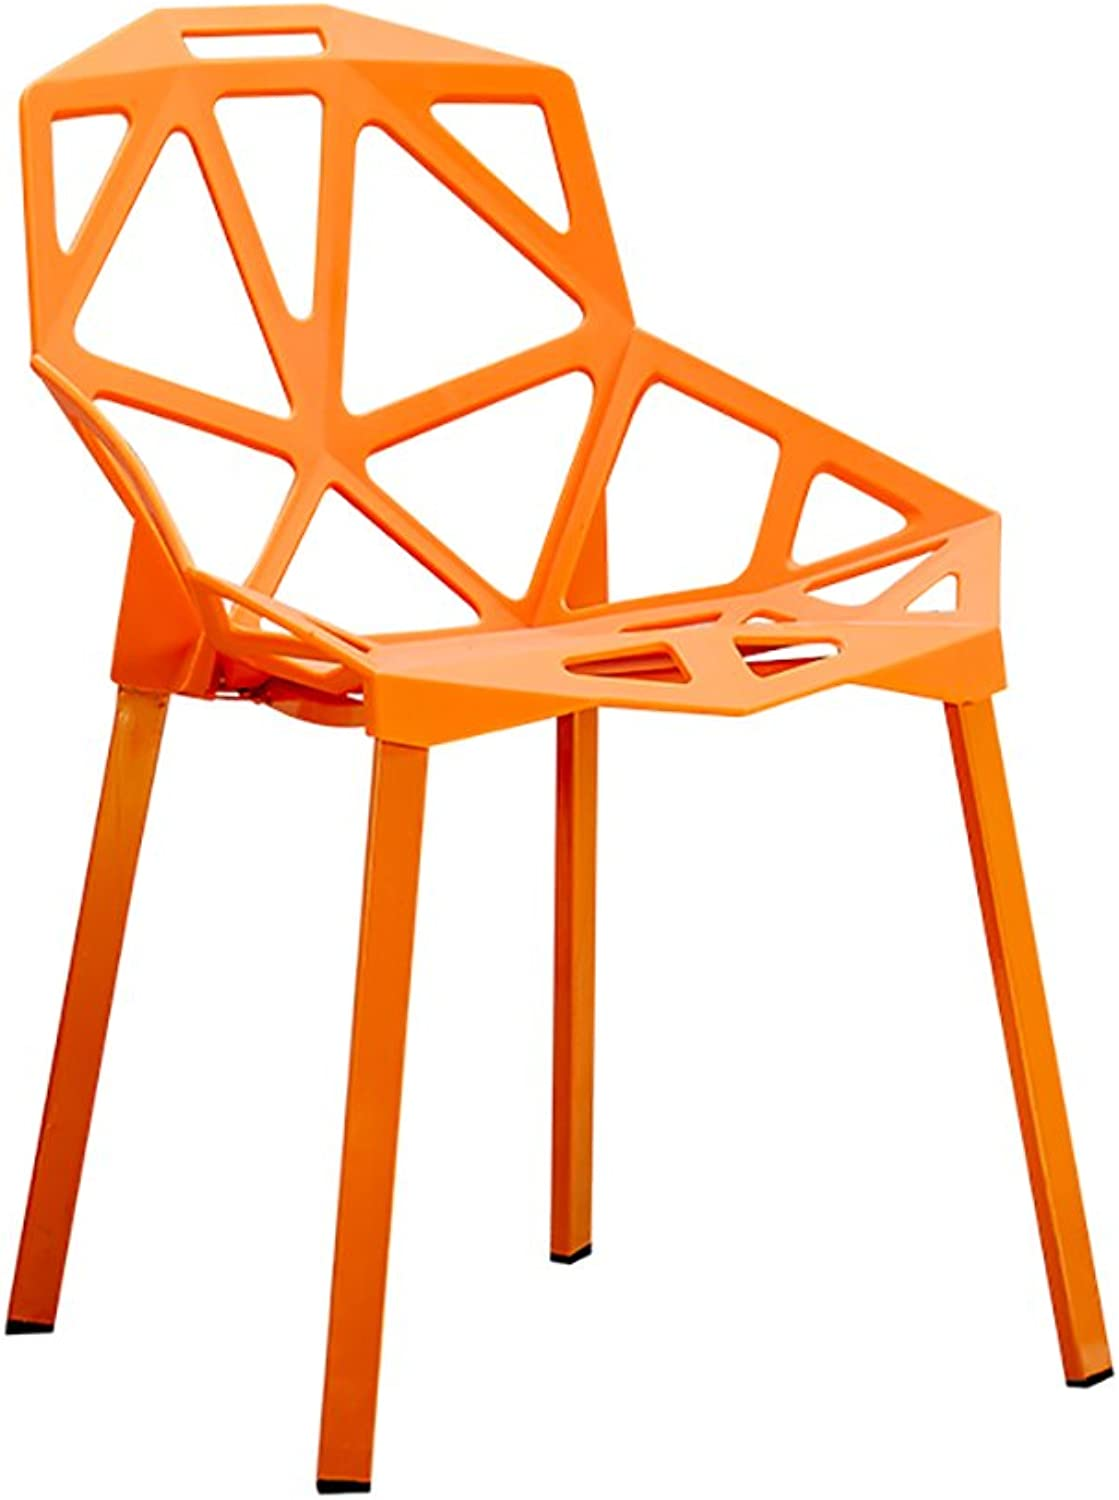 MING REN Chair - Creative Geometric Hollow Chair Home Modern Minimalist Plastic Stool Dining Chair - Multi-color Optional (Size  55X46X81cm) (color   orange)